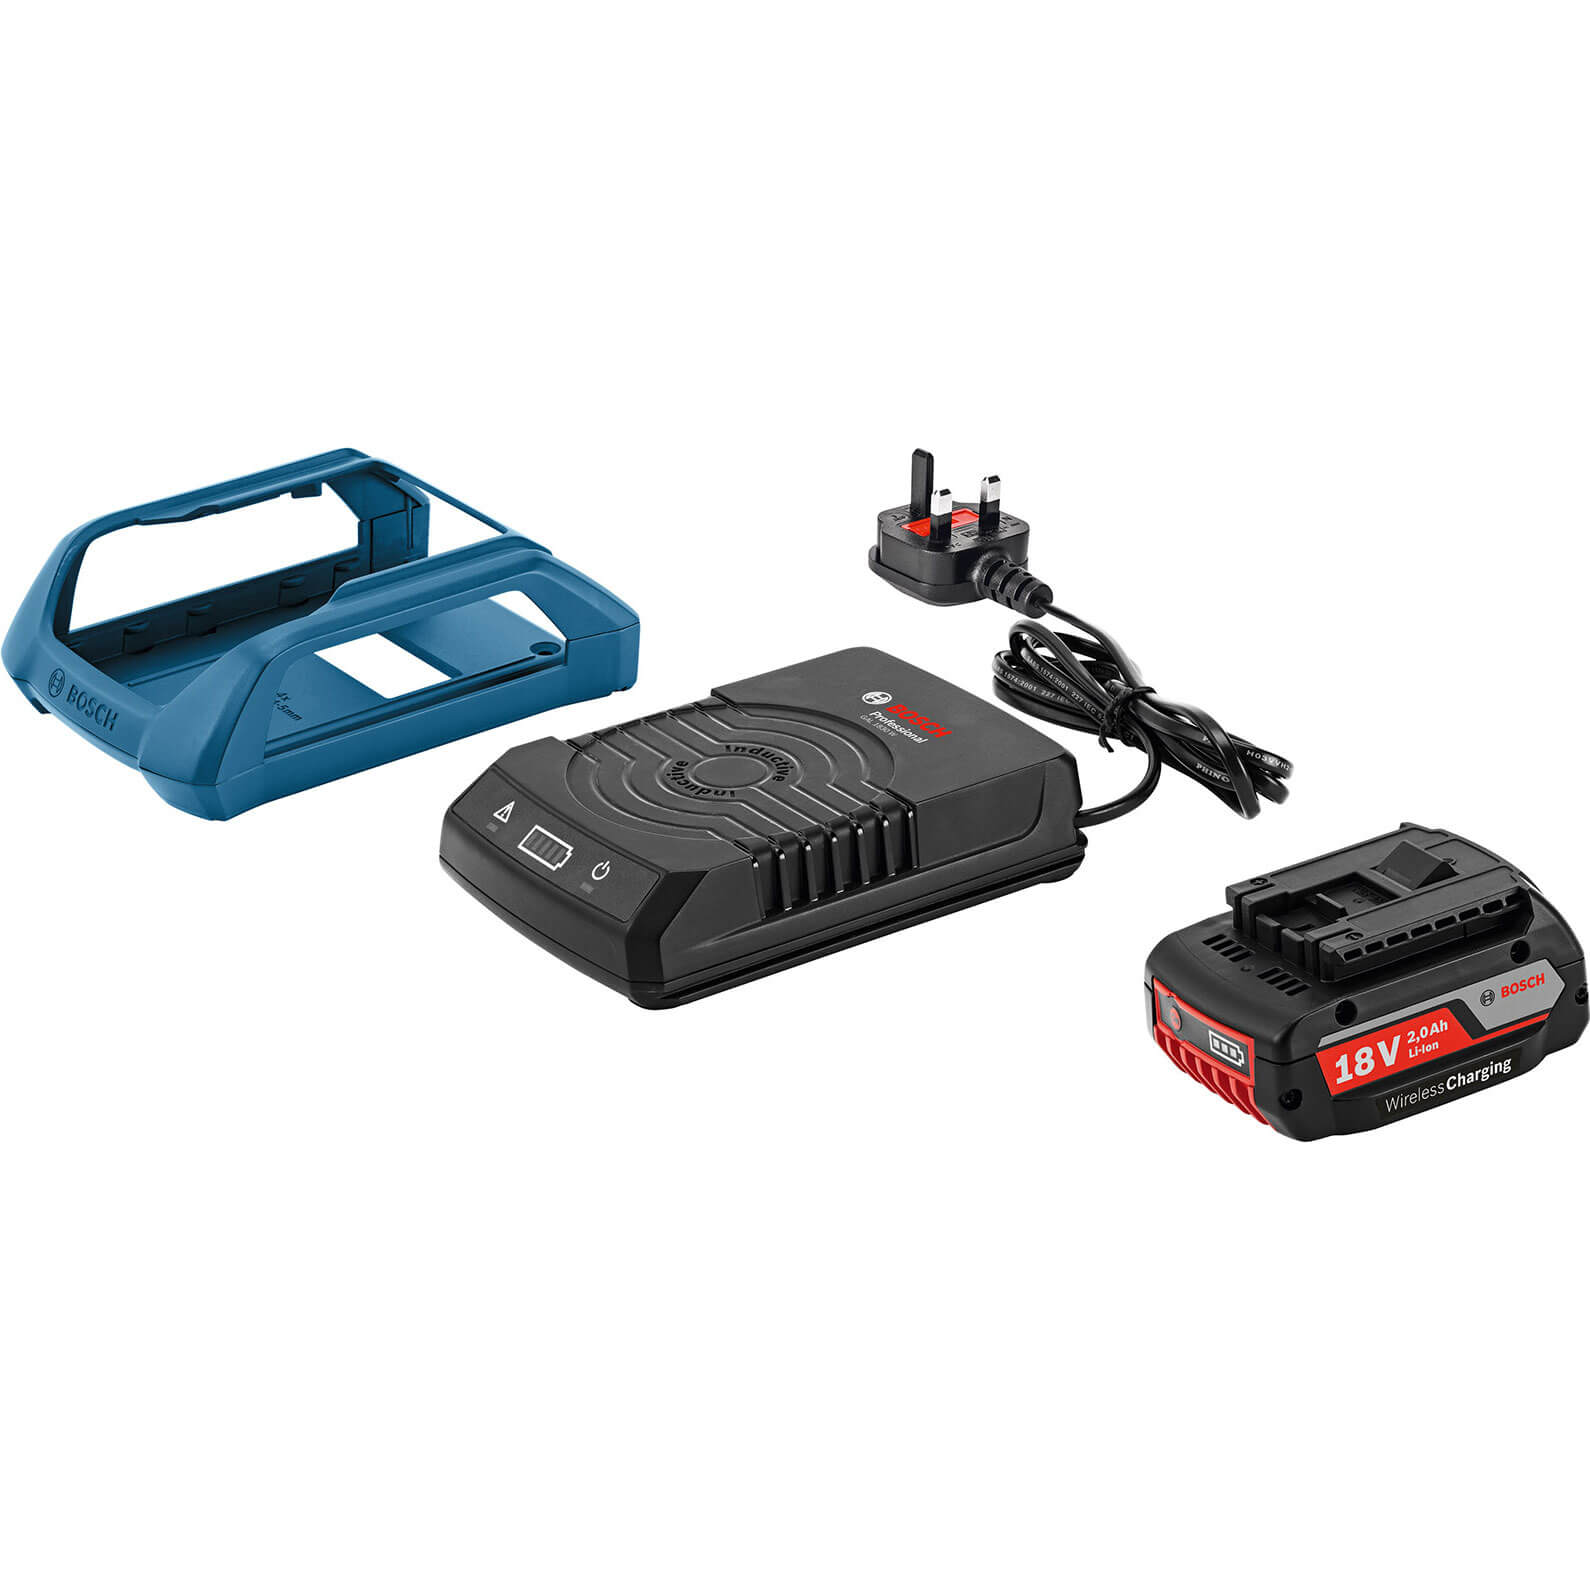 Image of Bosch GAL 1830 18v Cordless Wireless Battery Charger and 1 Li-ion Battery 2ah 240v